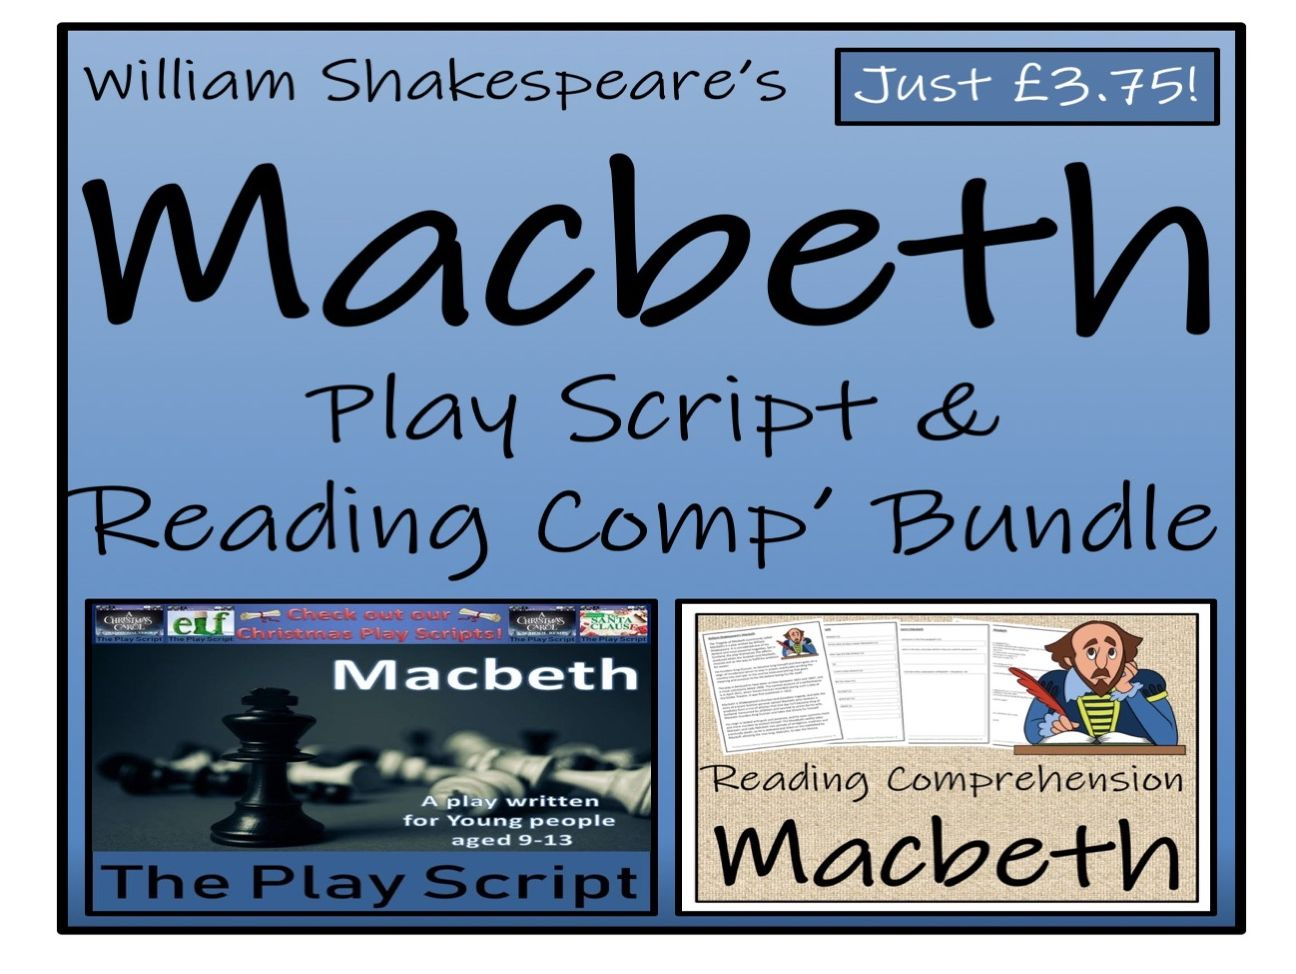 UKS2 Literacy - William Shakespeare's Macbeth - Play Script & Reading Comprehension Bundle